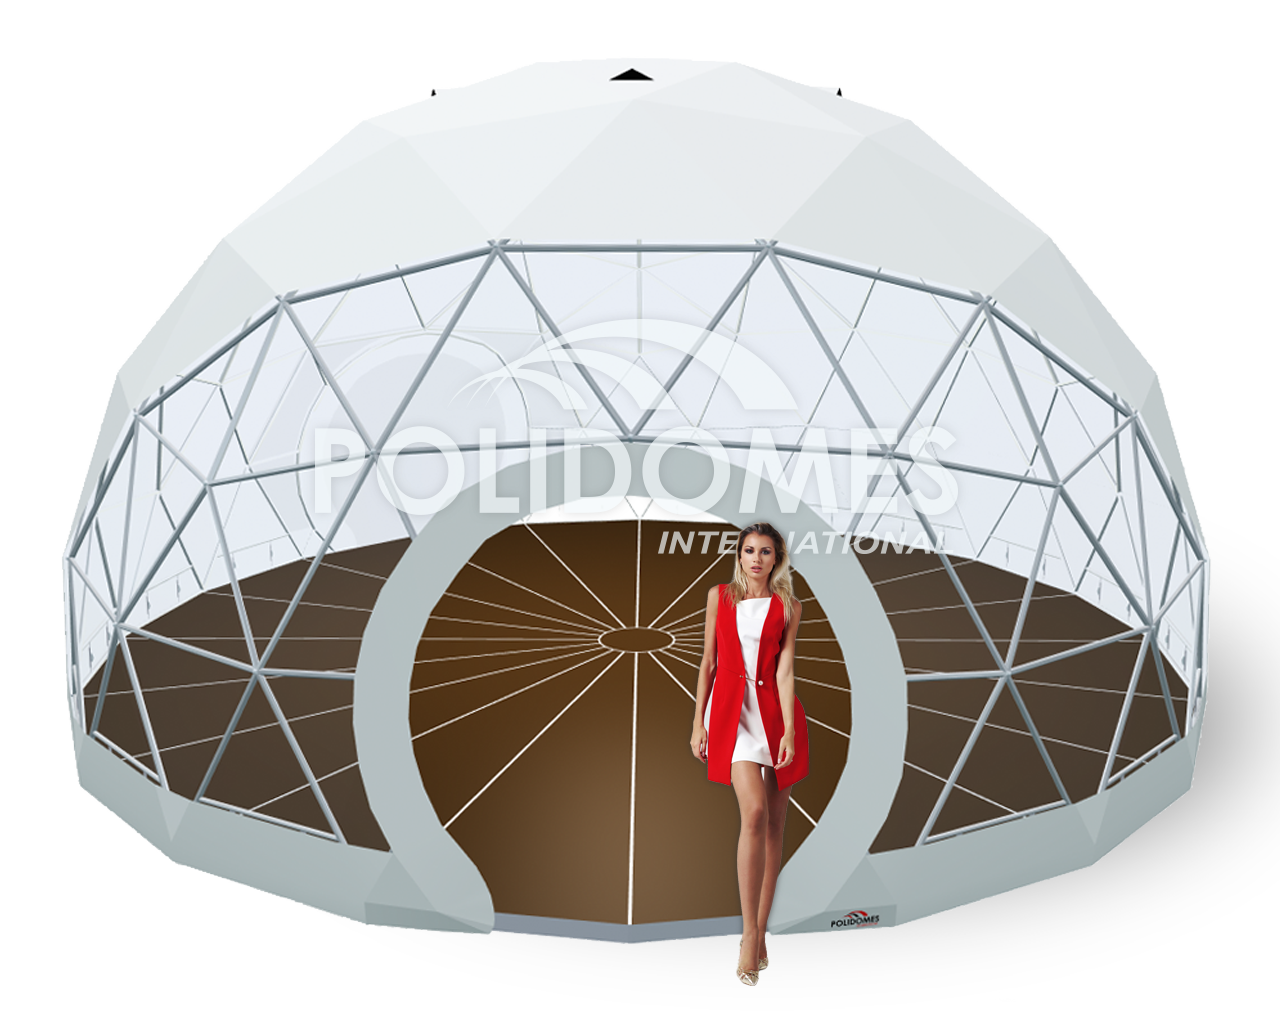 Geodesic Dome Tents - Polidomes – geodesic tents